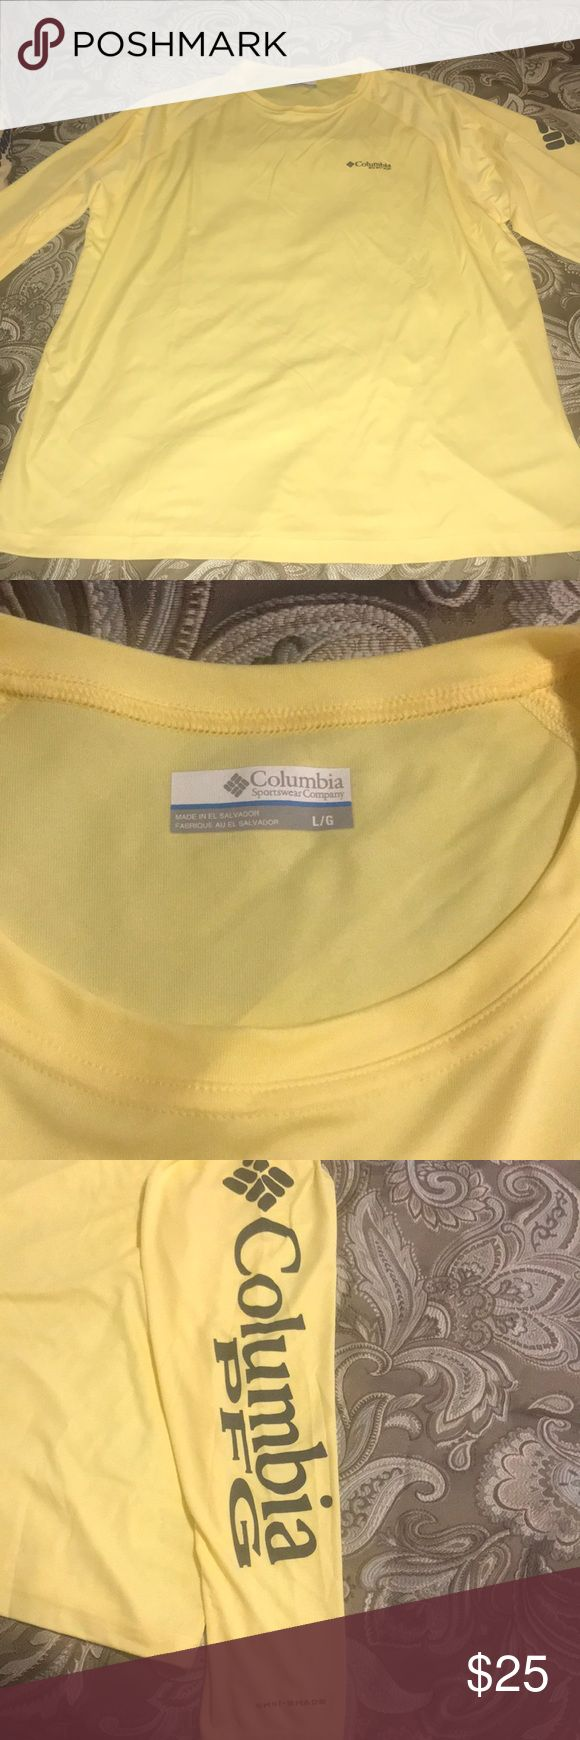 Men's Columbia PFG shirt Butter yellow. Breathable material. Never worn purchased the wrong size. Columbia shirt. Price is firm. Columbia Shirts Tees - Long Sleeve